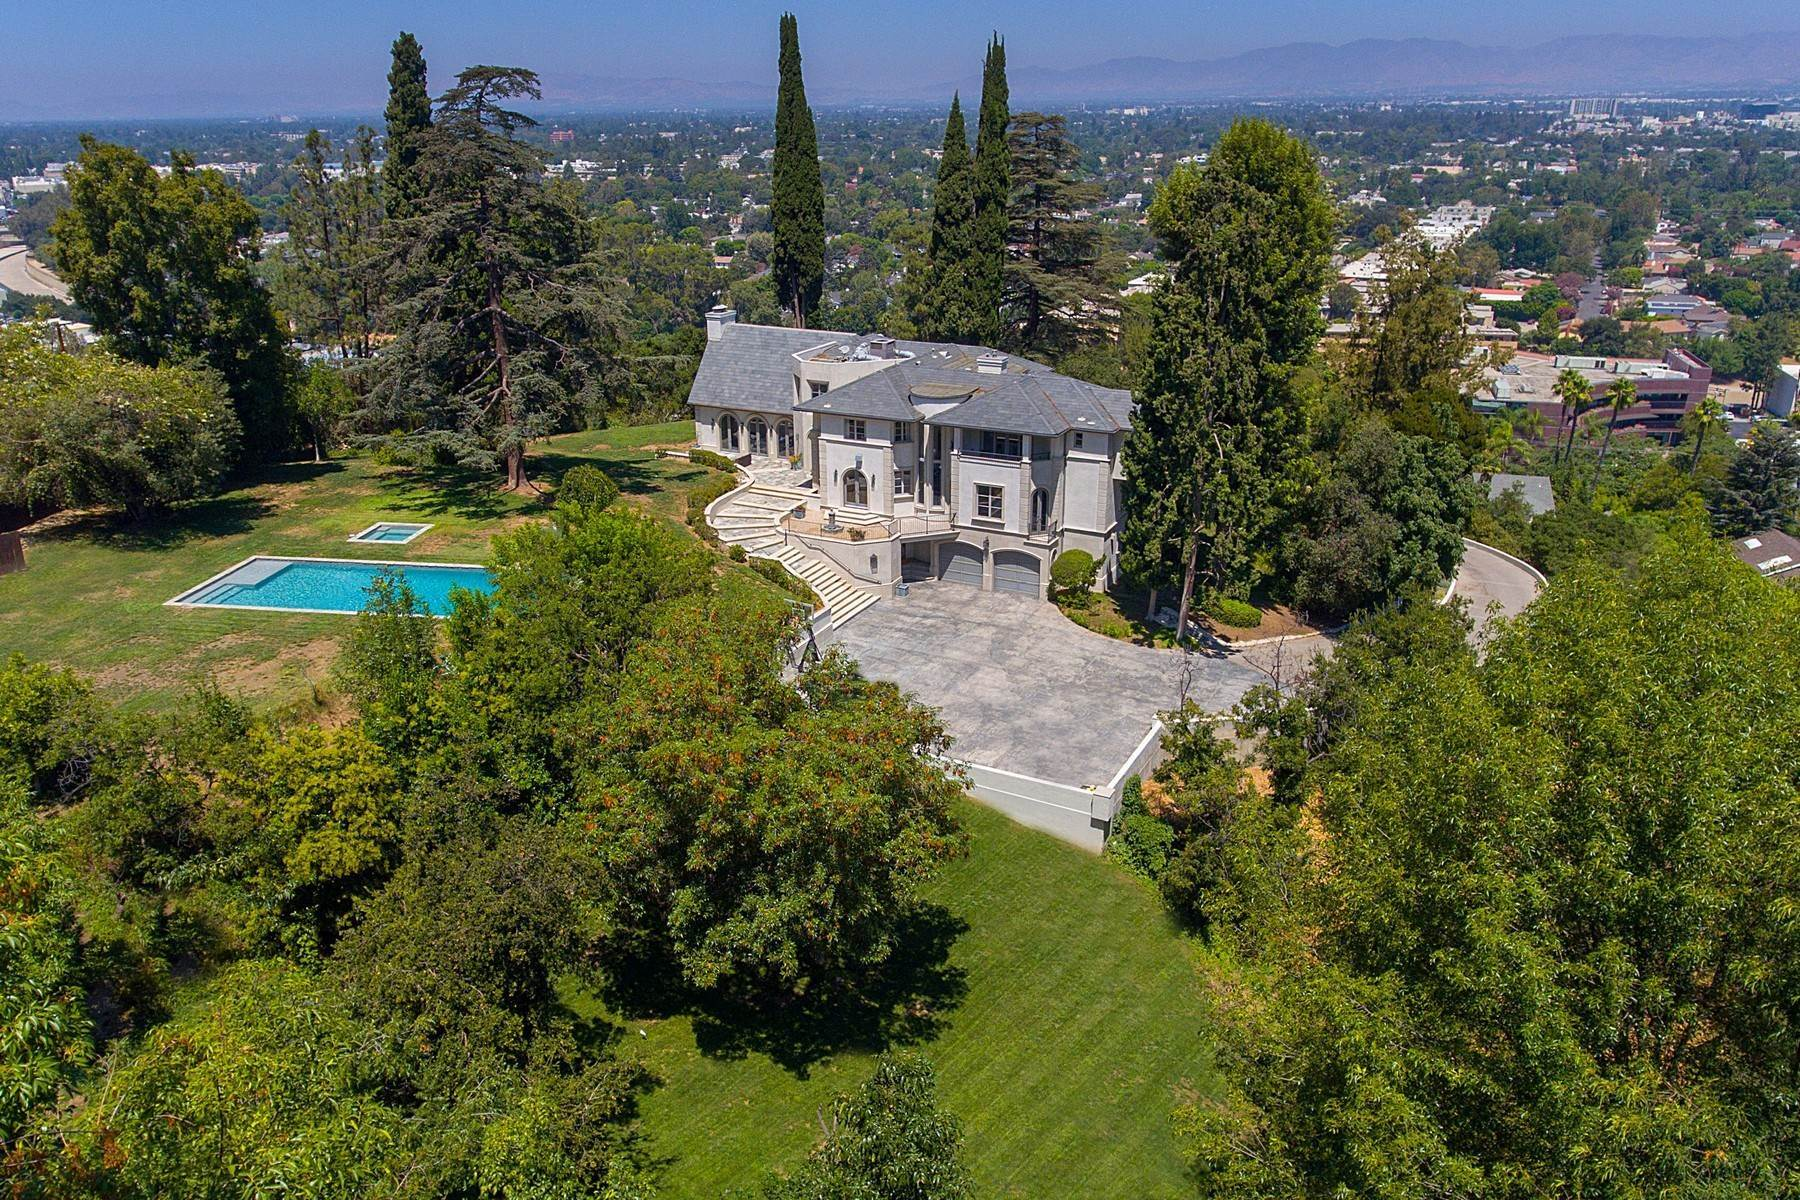 Single Family Homes for Sale at 11400 Sunshine Terrace Studio City, California 91604 United States